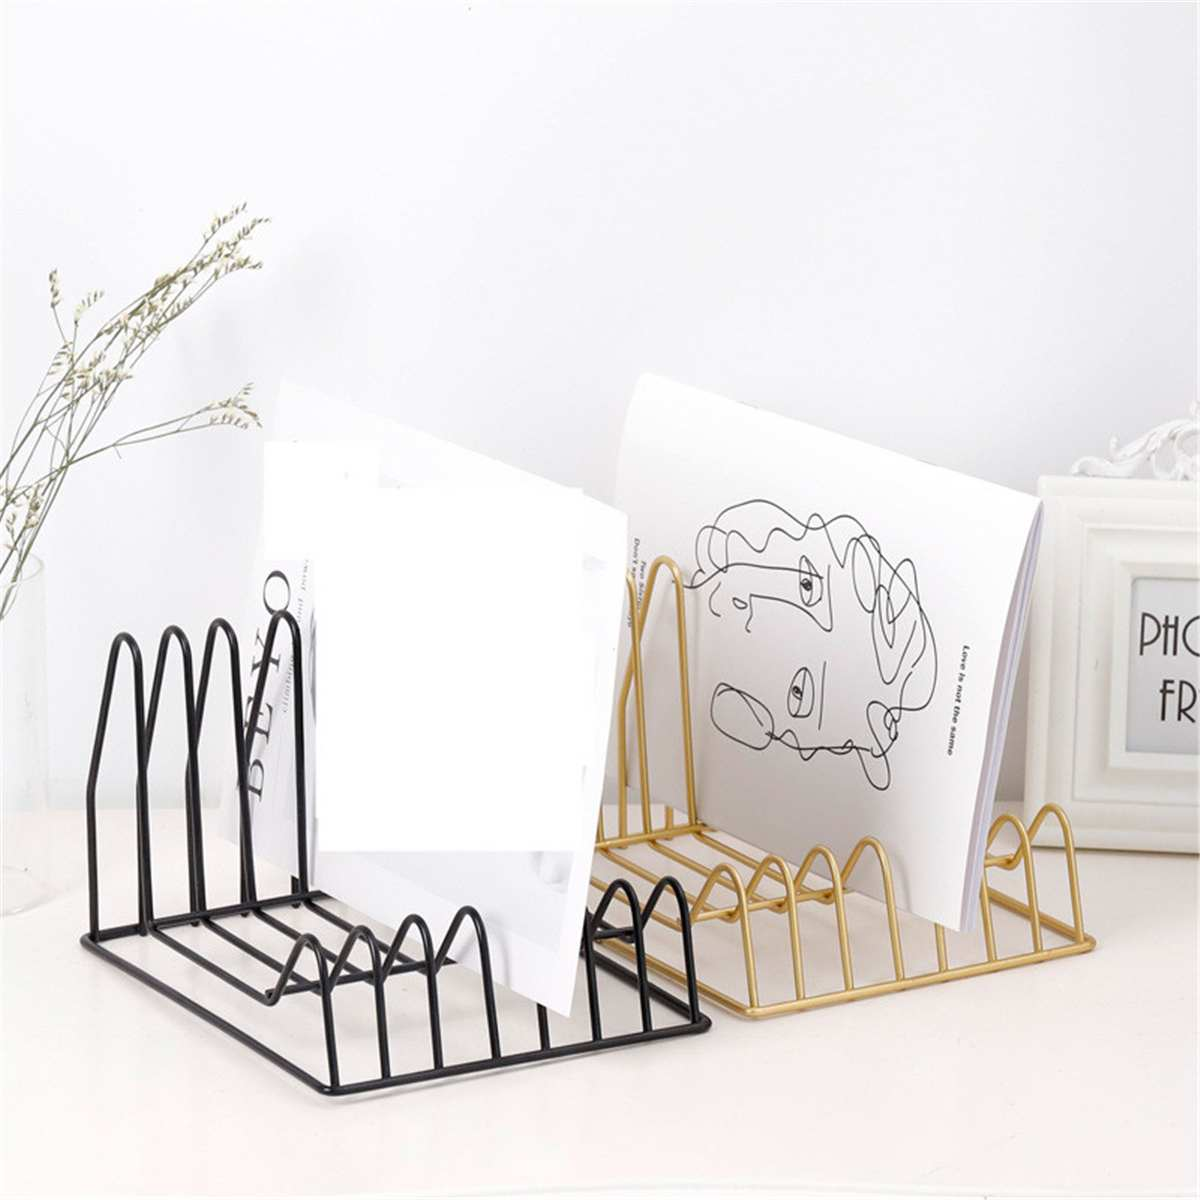 Metal Bookshelf Letter Magazine Storage Rack Tray Holder Desk Organization